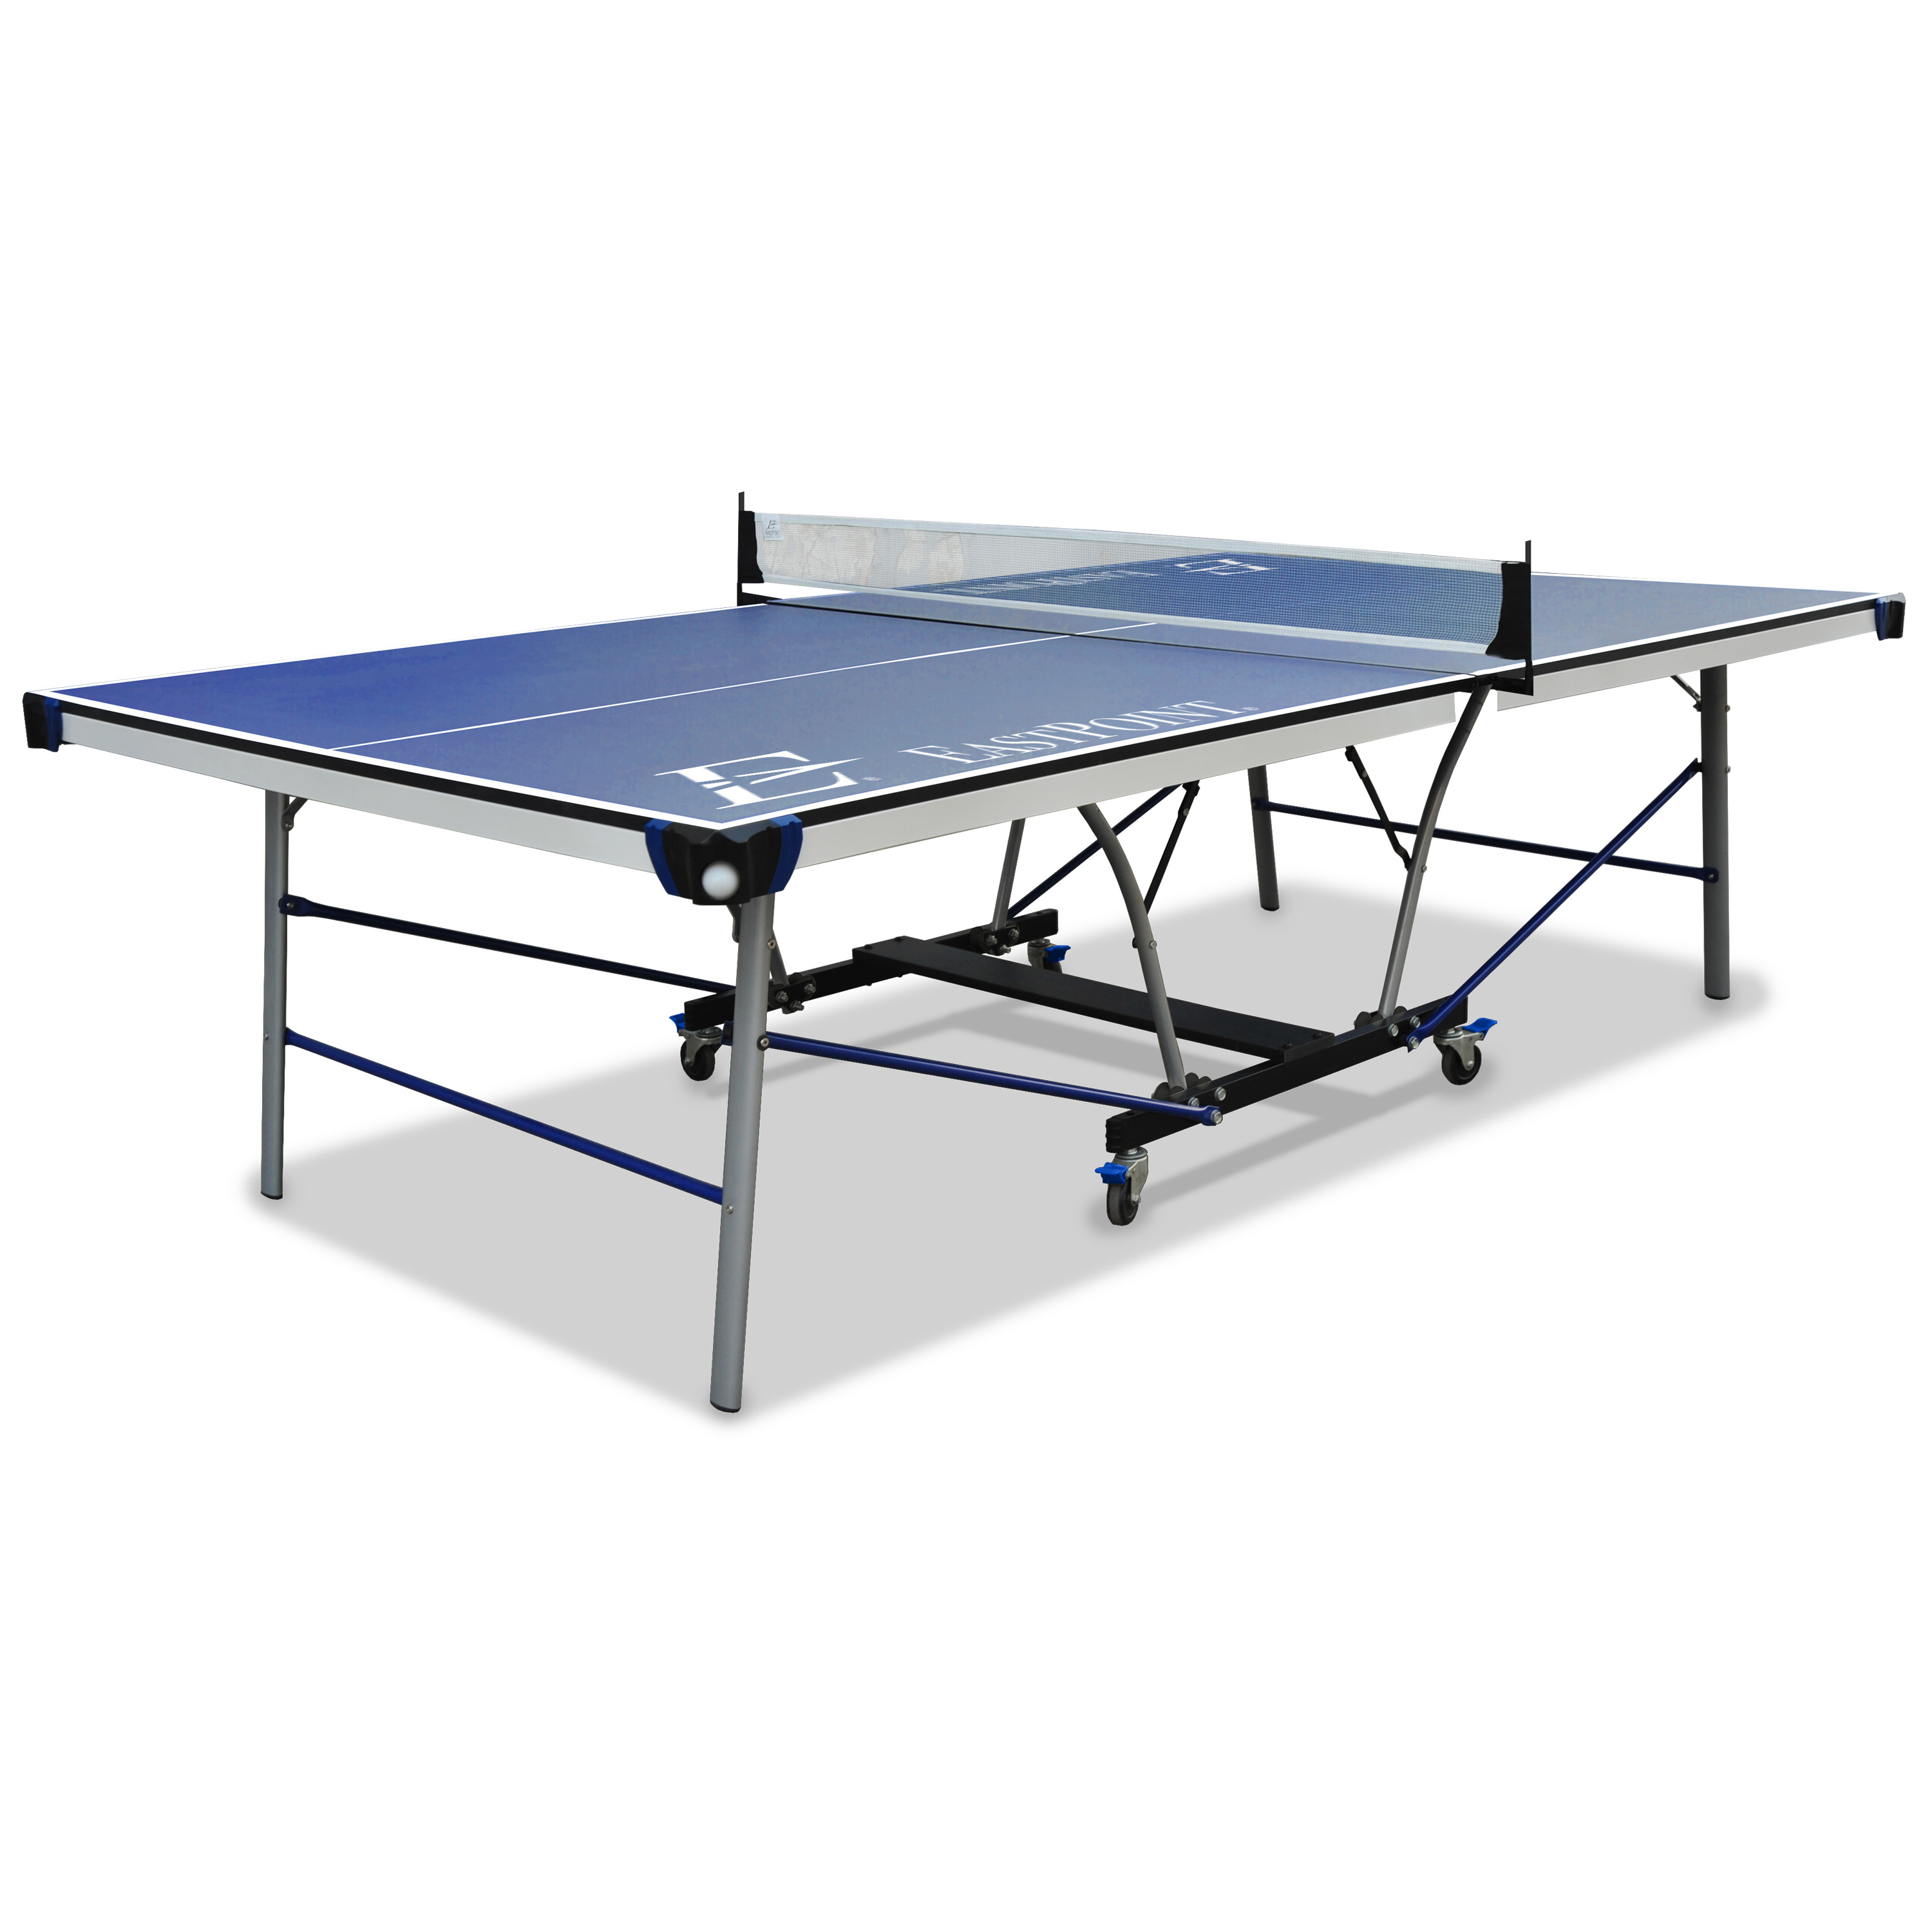 Eastpoint Sports Eps 3200 2 Piece Table Tennis Table